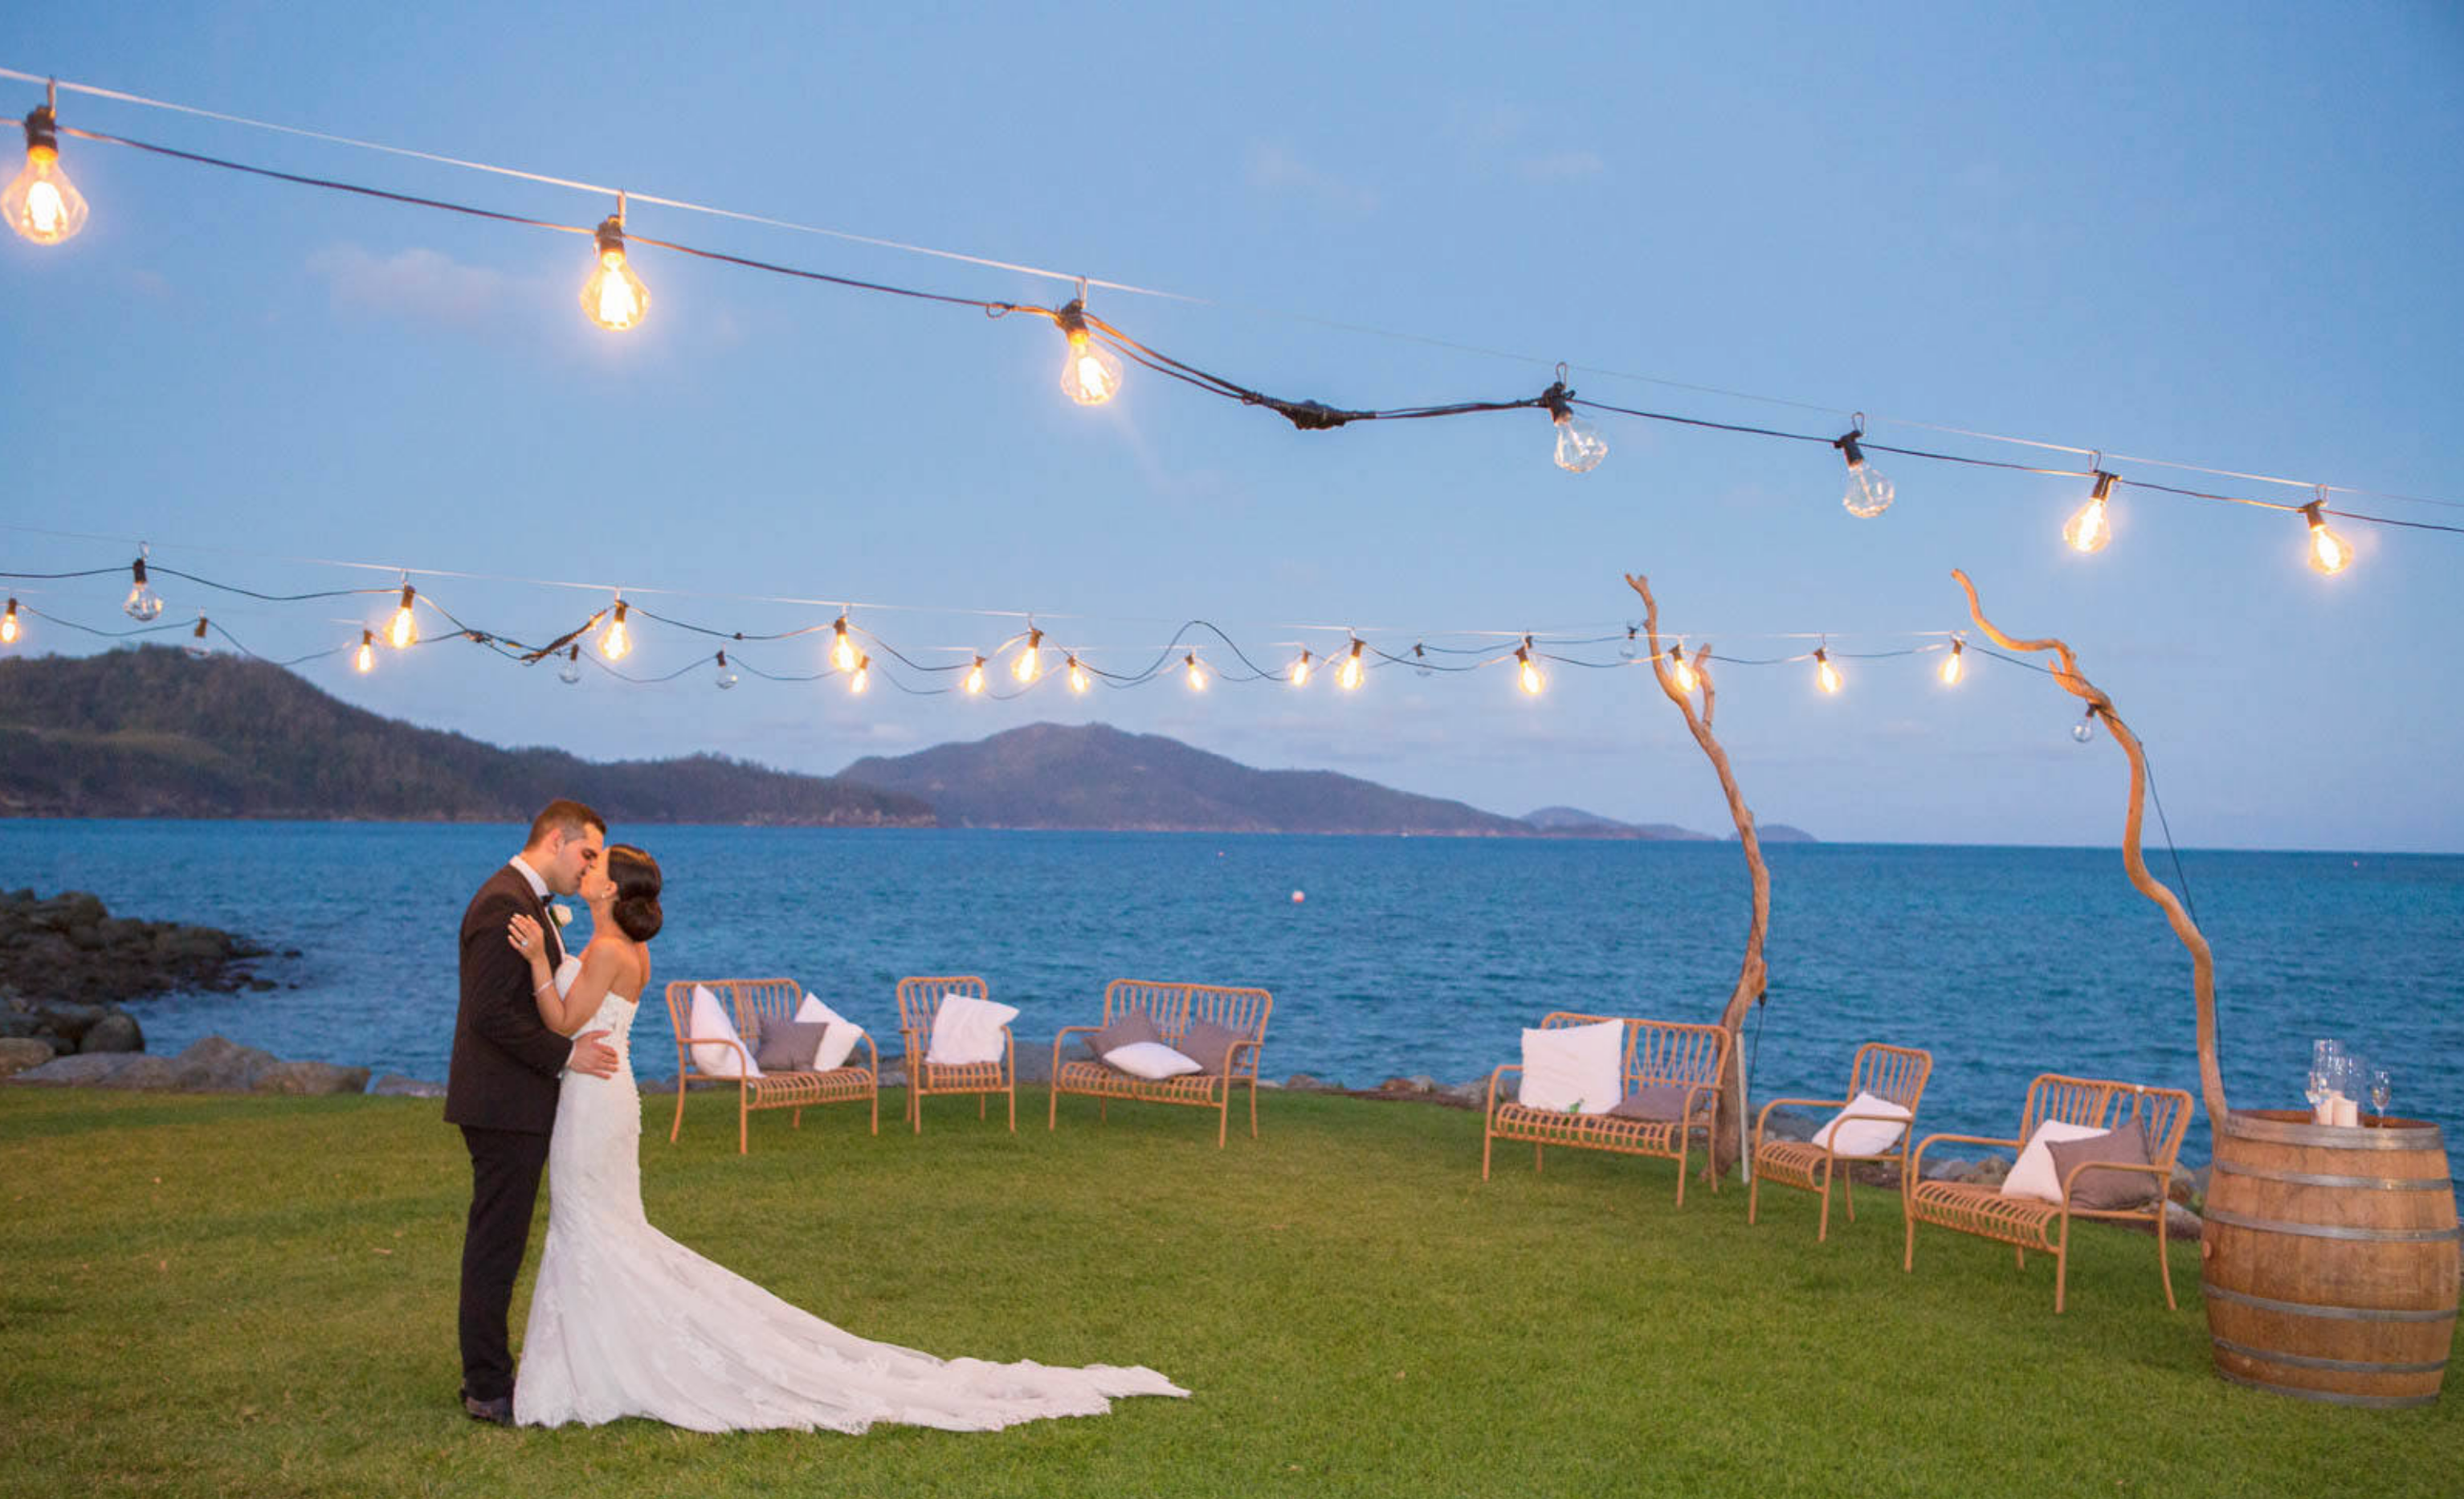 https://www.hamiltonislandweddings.com/wp-content/uploads/2019/02/Screen-Shot-2019-02-21-at-2.15.45-pm.png